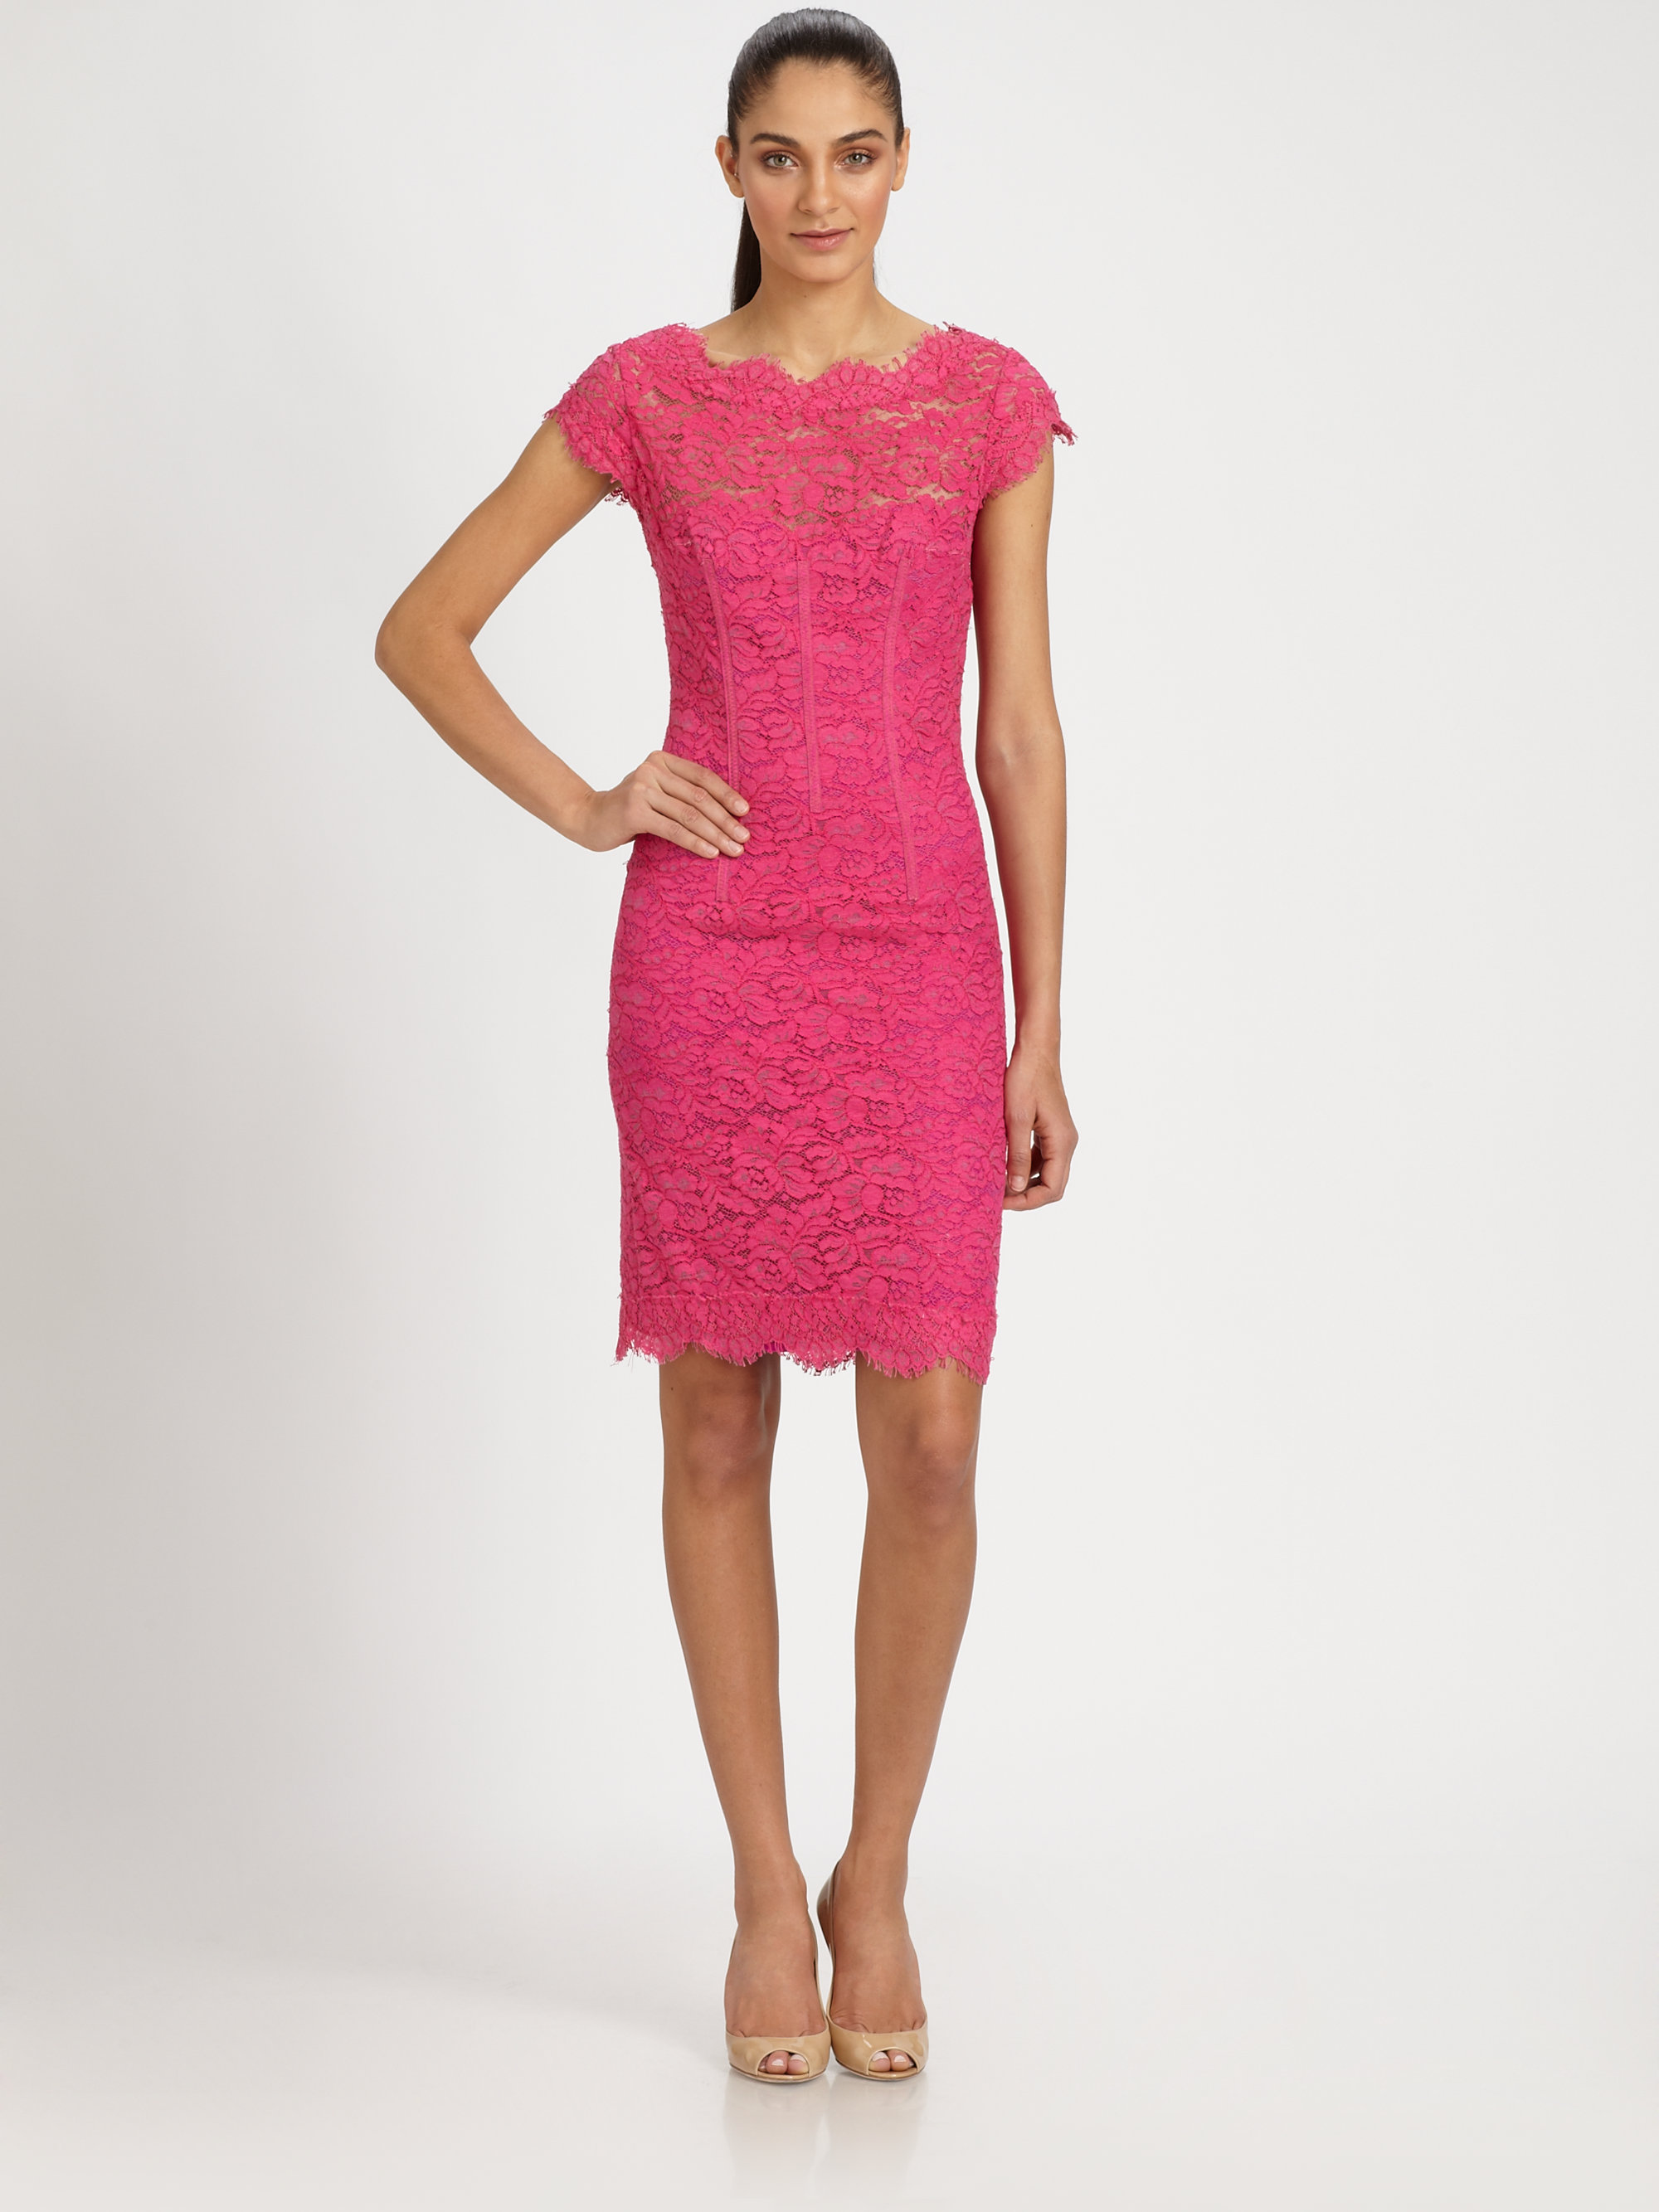 Lyst - Ml monique lhuillier Diamondback Lace Dress in Pink